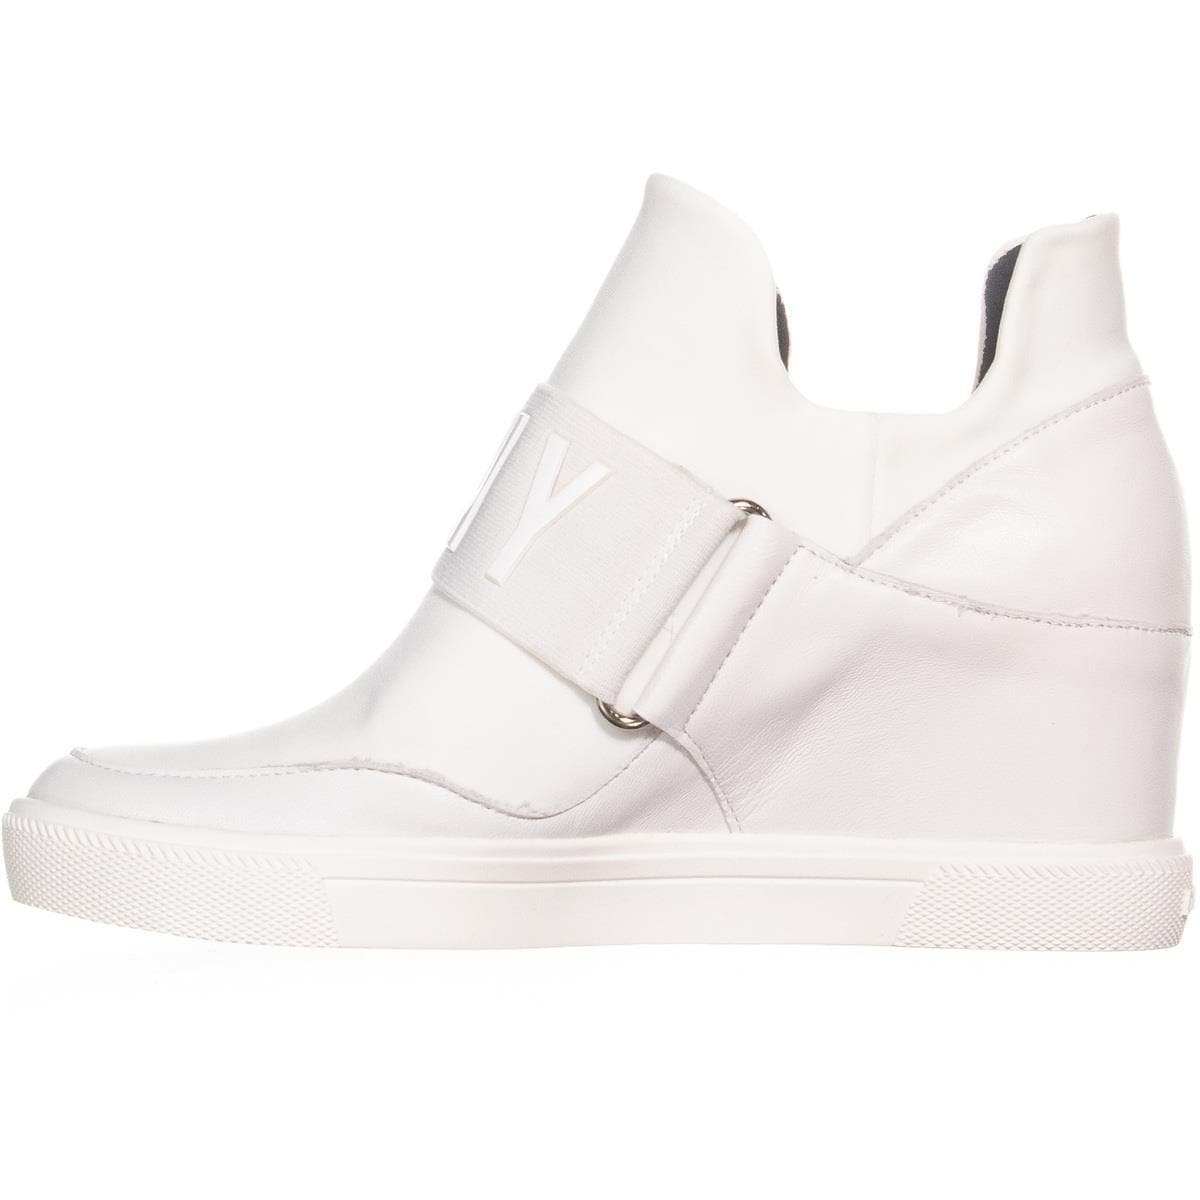 d070c3e3e6df Shop DKNY Cosmos Slip On High Top Wedge Sneakers